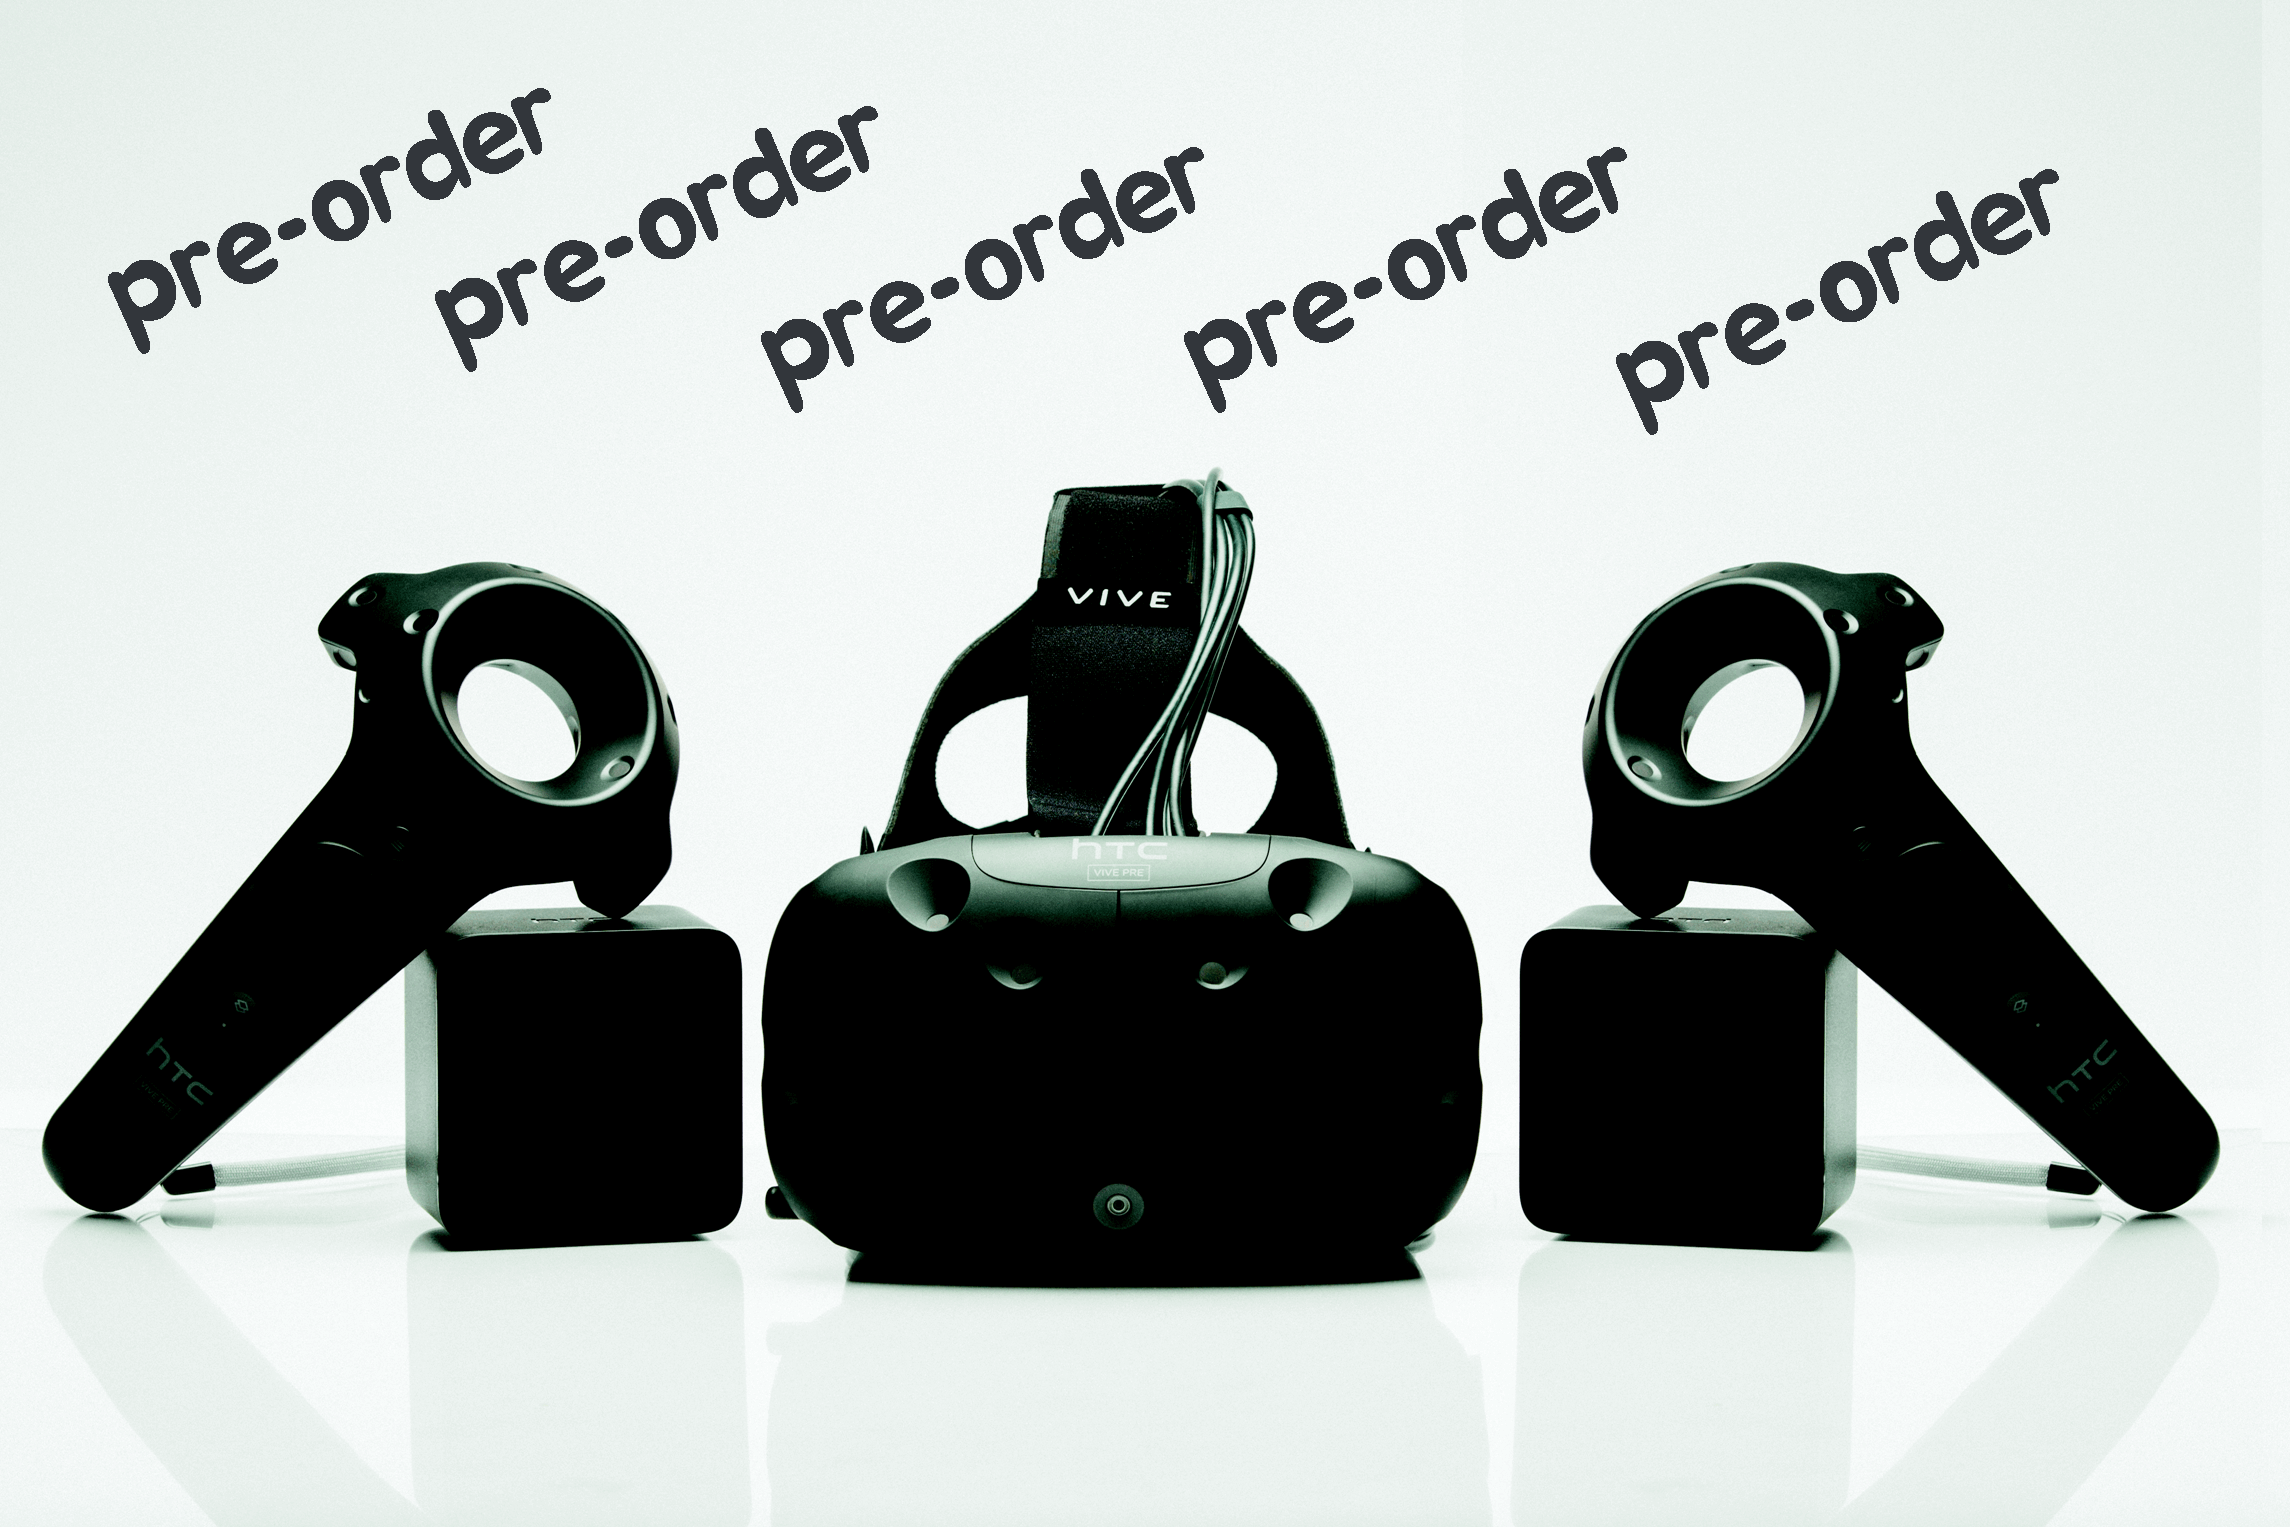 HTC Vive pre-orders on February 29